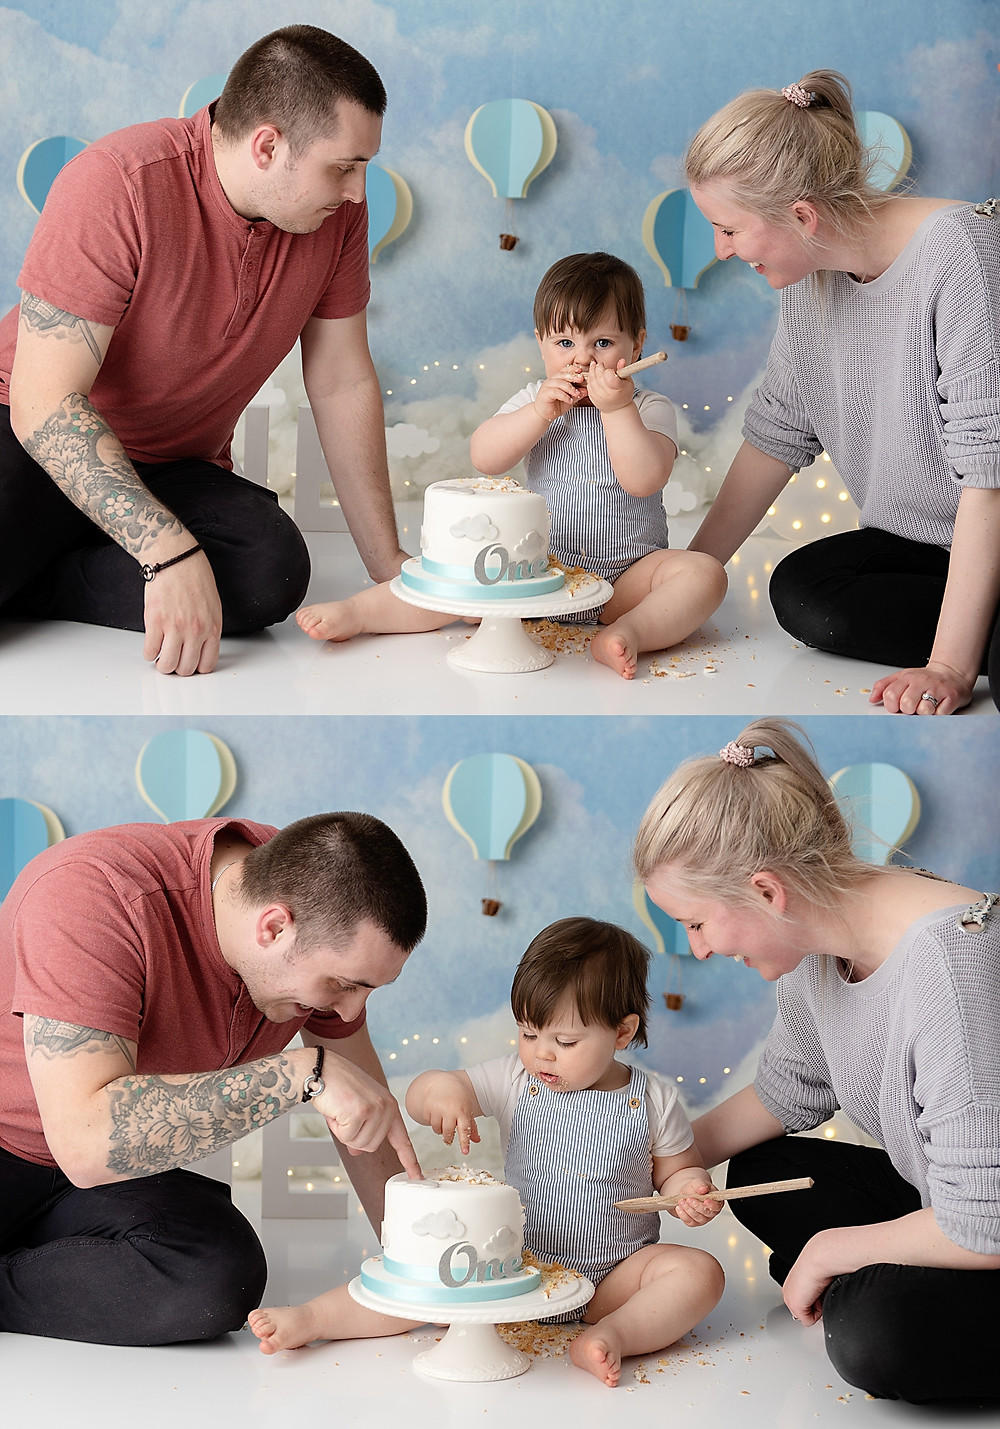 Parents with baby boy in cake smash photo shoot